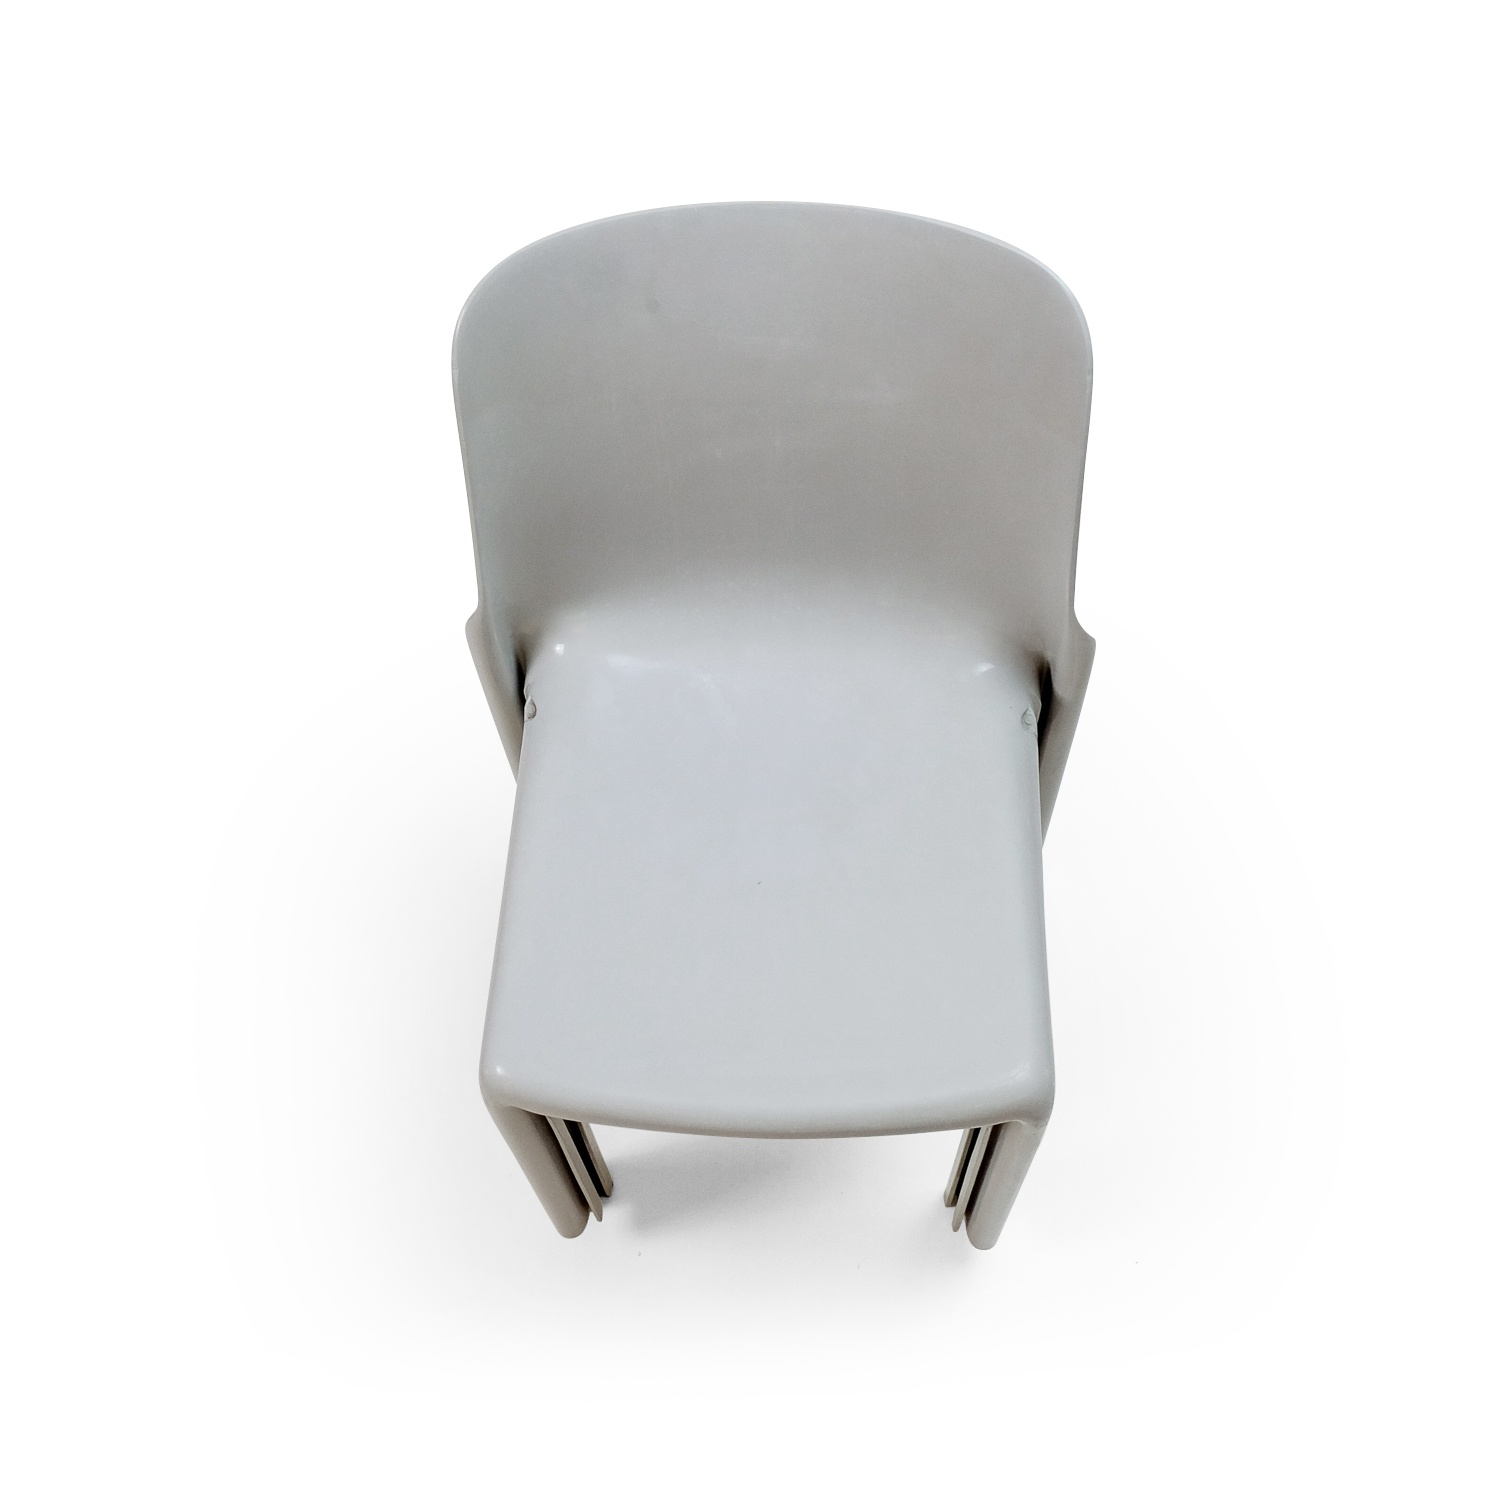 Vintage Sélène Chairs by Vico Magistretti for Artemide